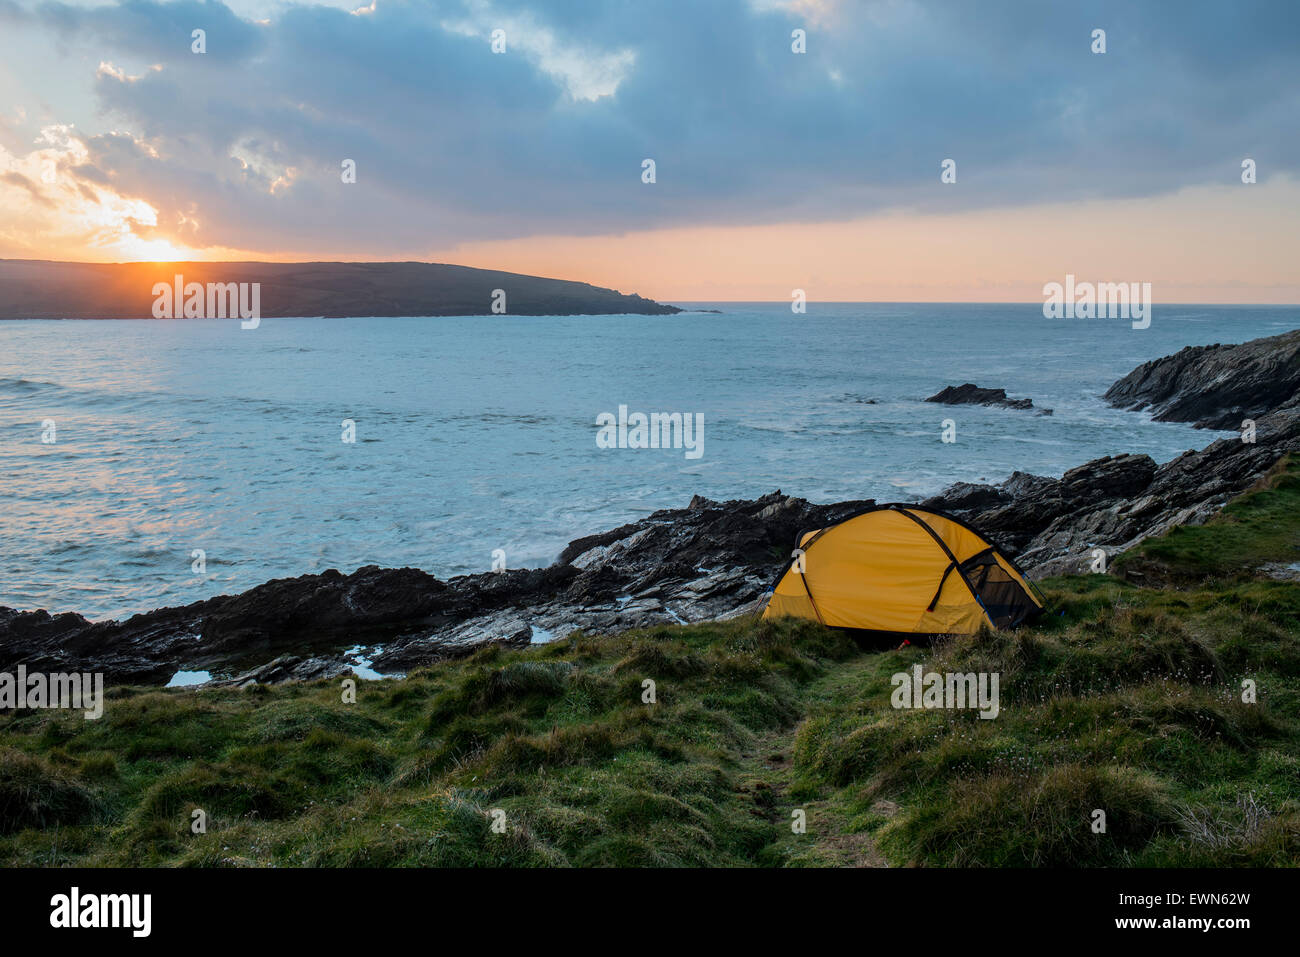 Wild camping by the sea at sunset in Cornwall, UK - Stock Image